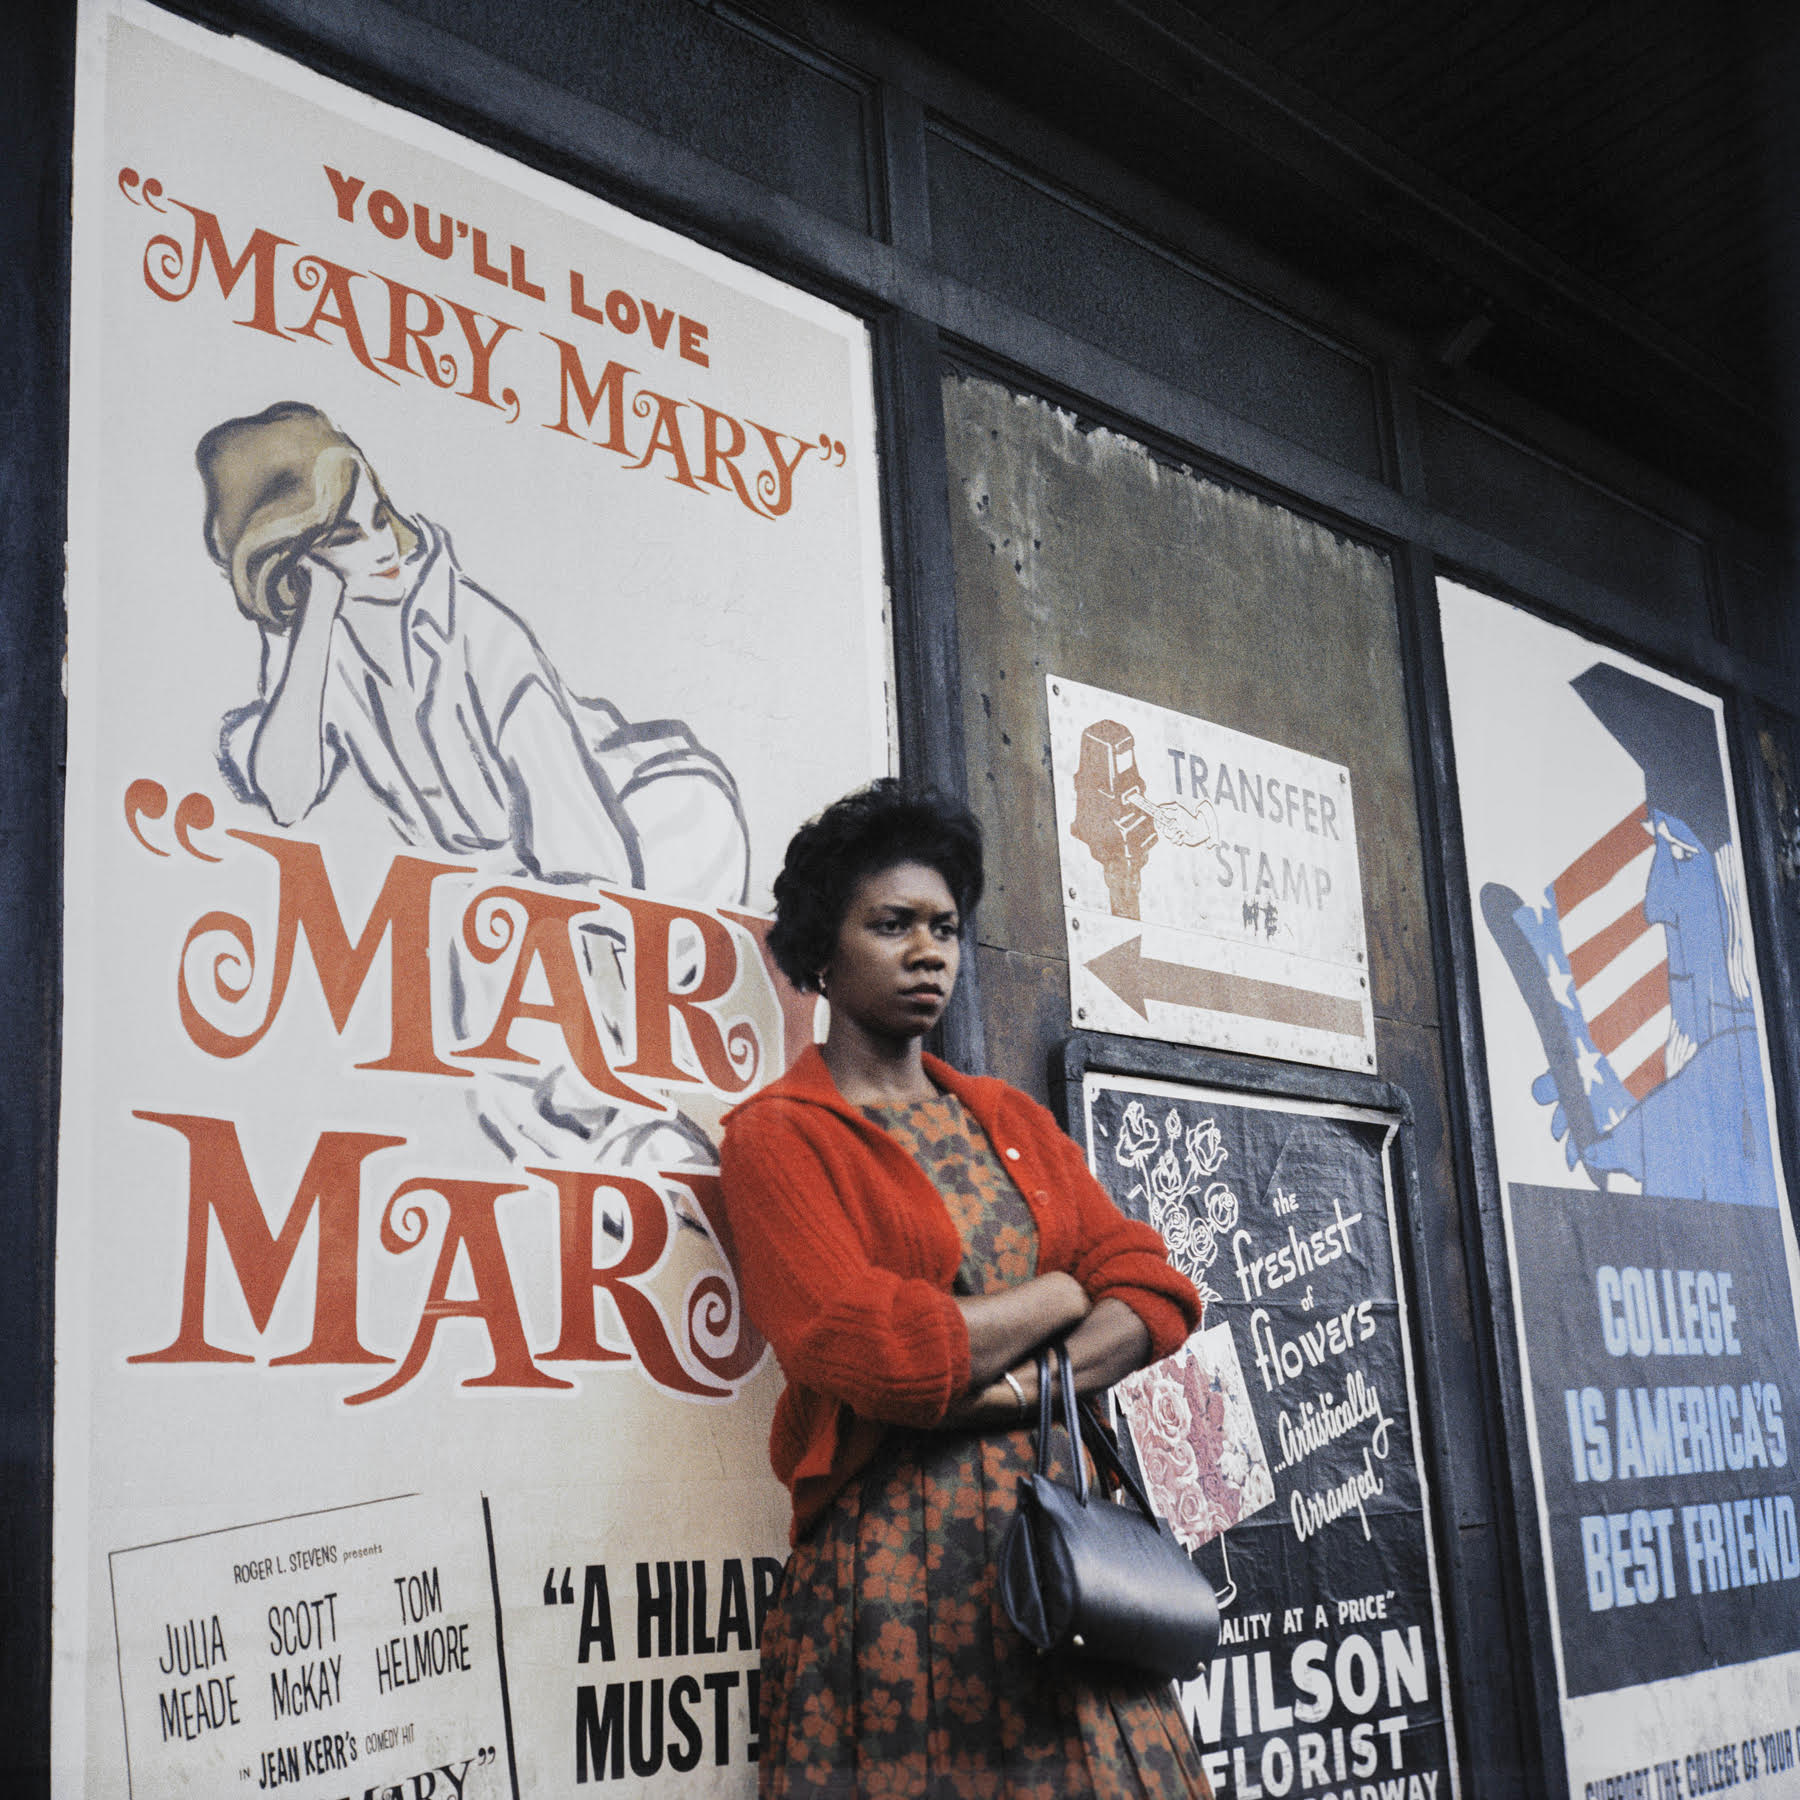 Location and date unknown. © Estate of Vivian Maier, Courtesy Maloof Collection and Howard Greenberg Gallery, New York